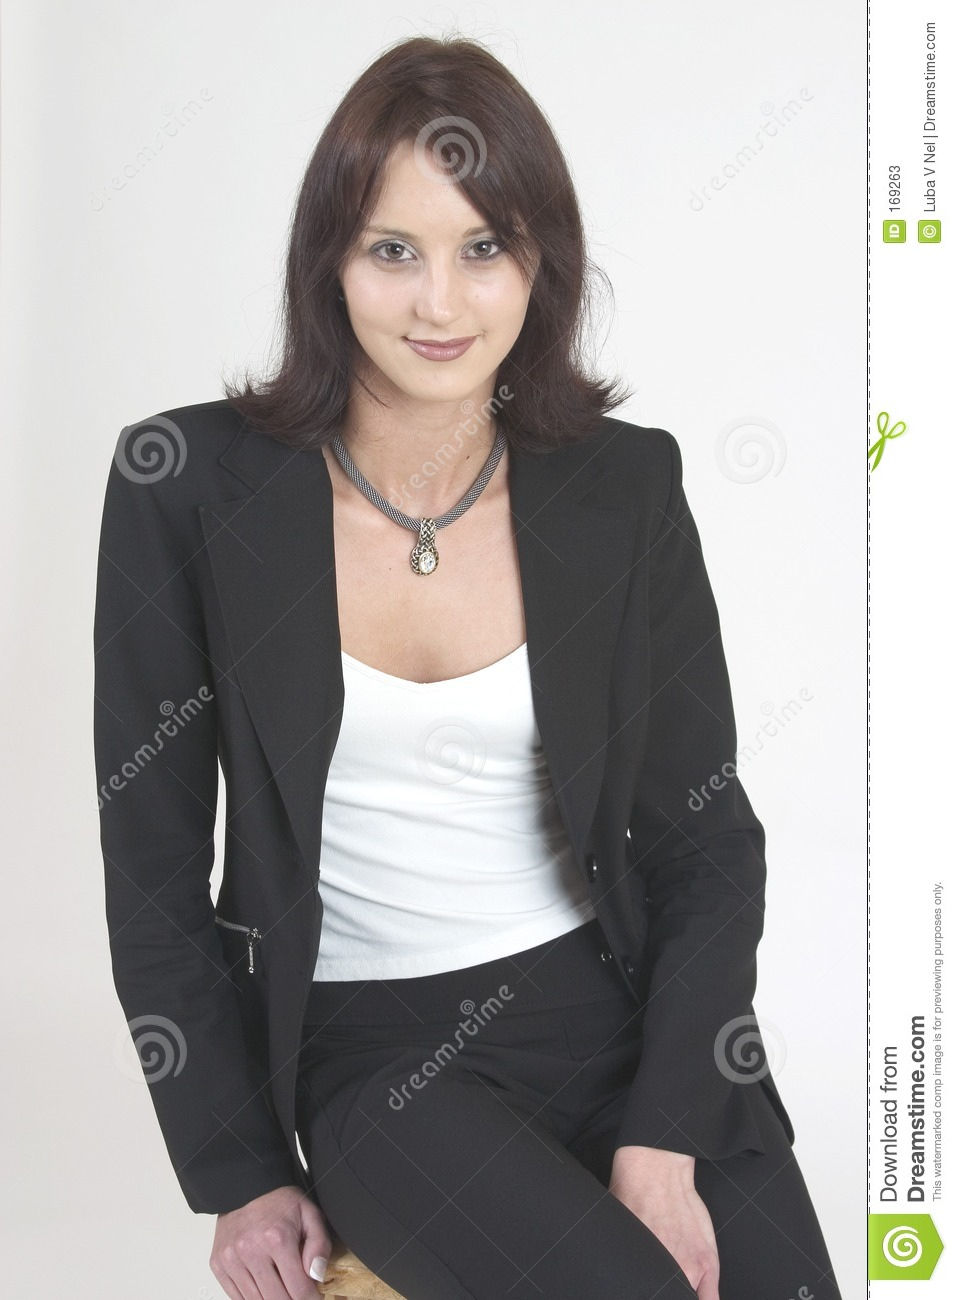 Professional woman facing forward in a relaxed position